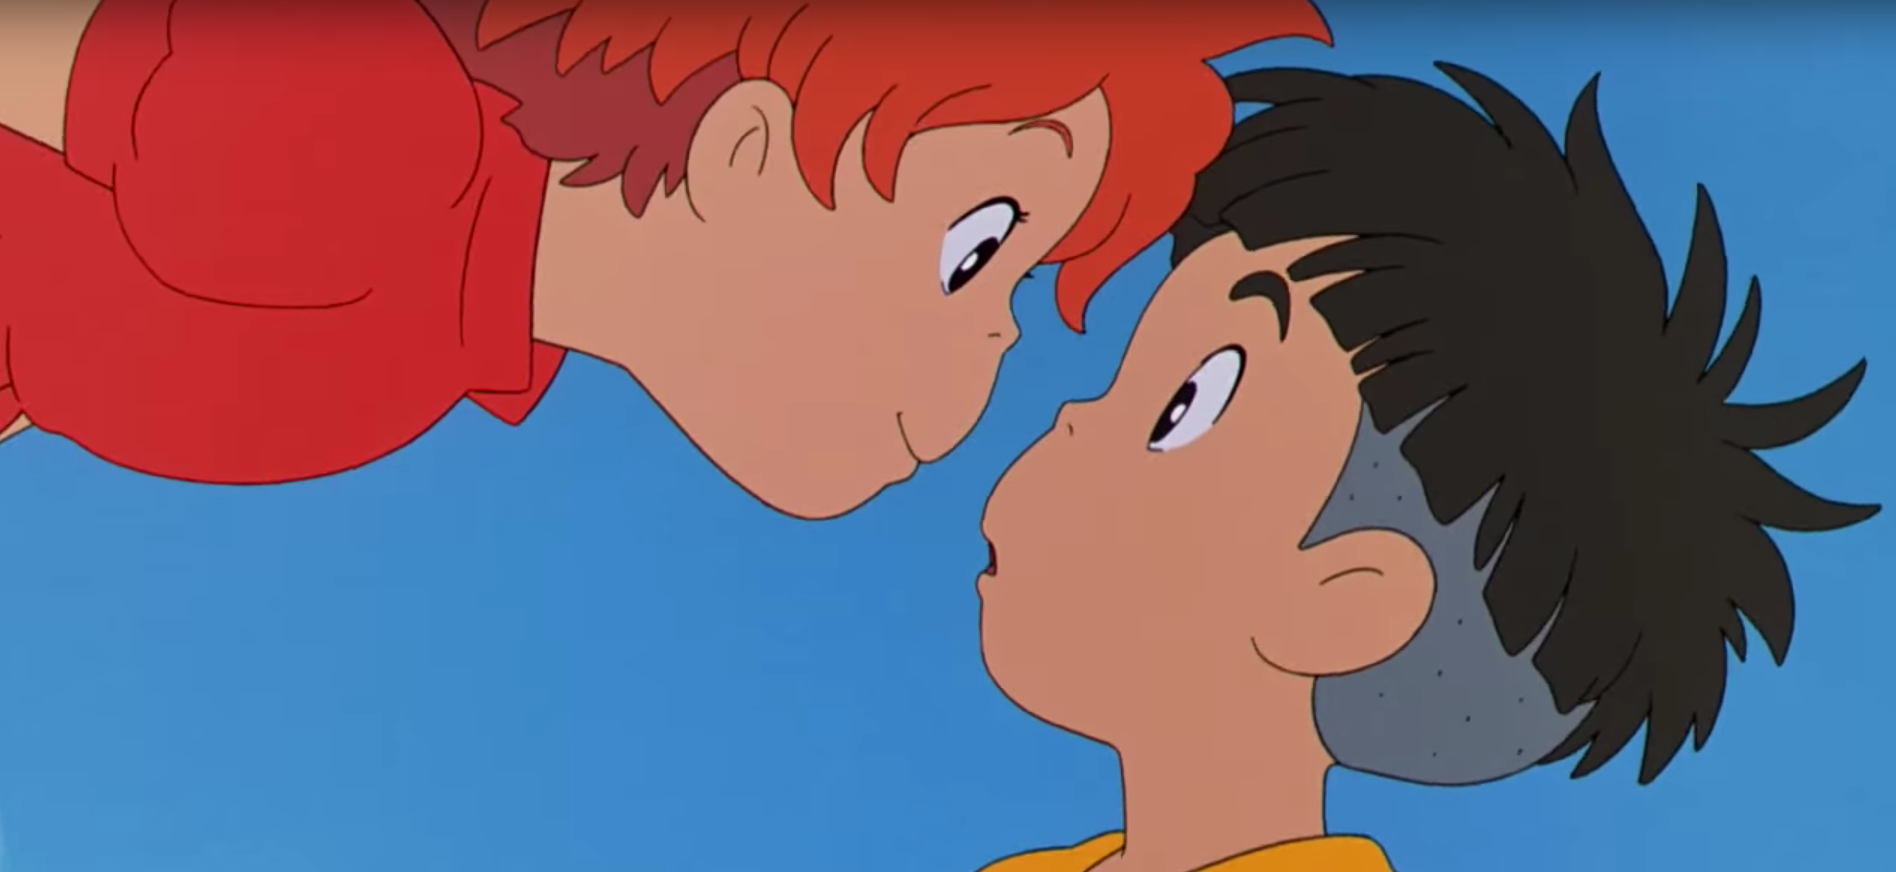 Why Studio Ghibli Didn't Make Ponyo 2